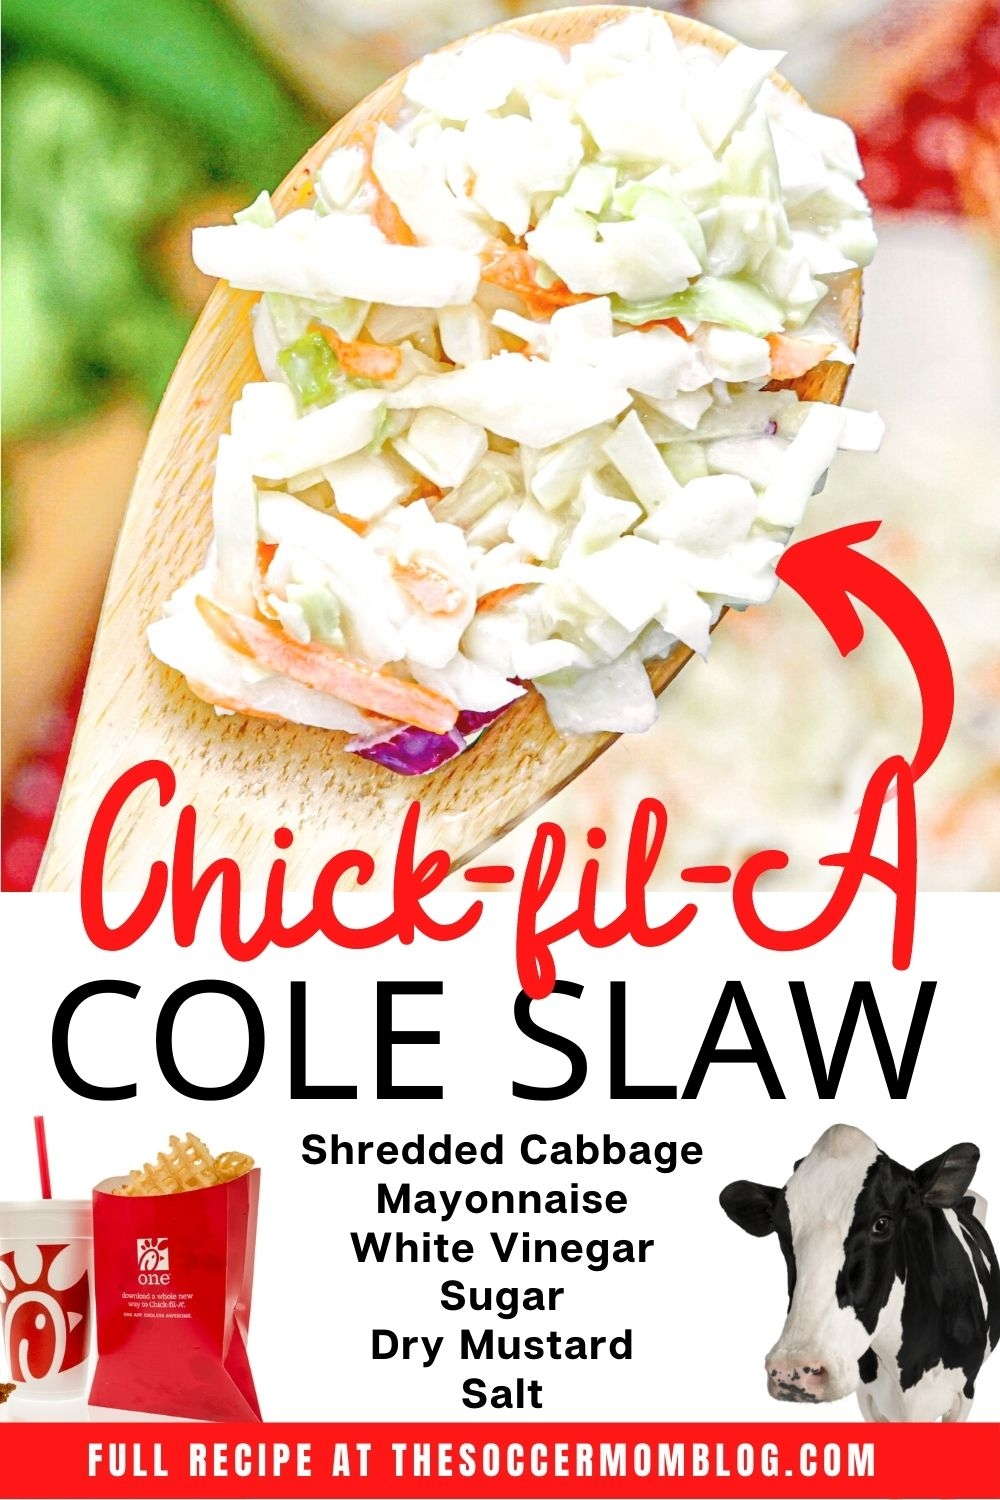 list of ingredients to make chick-fil-a coleslaw